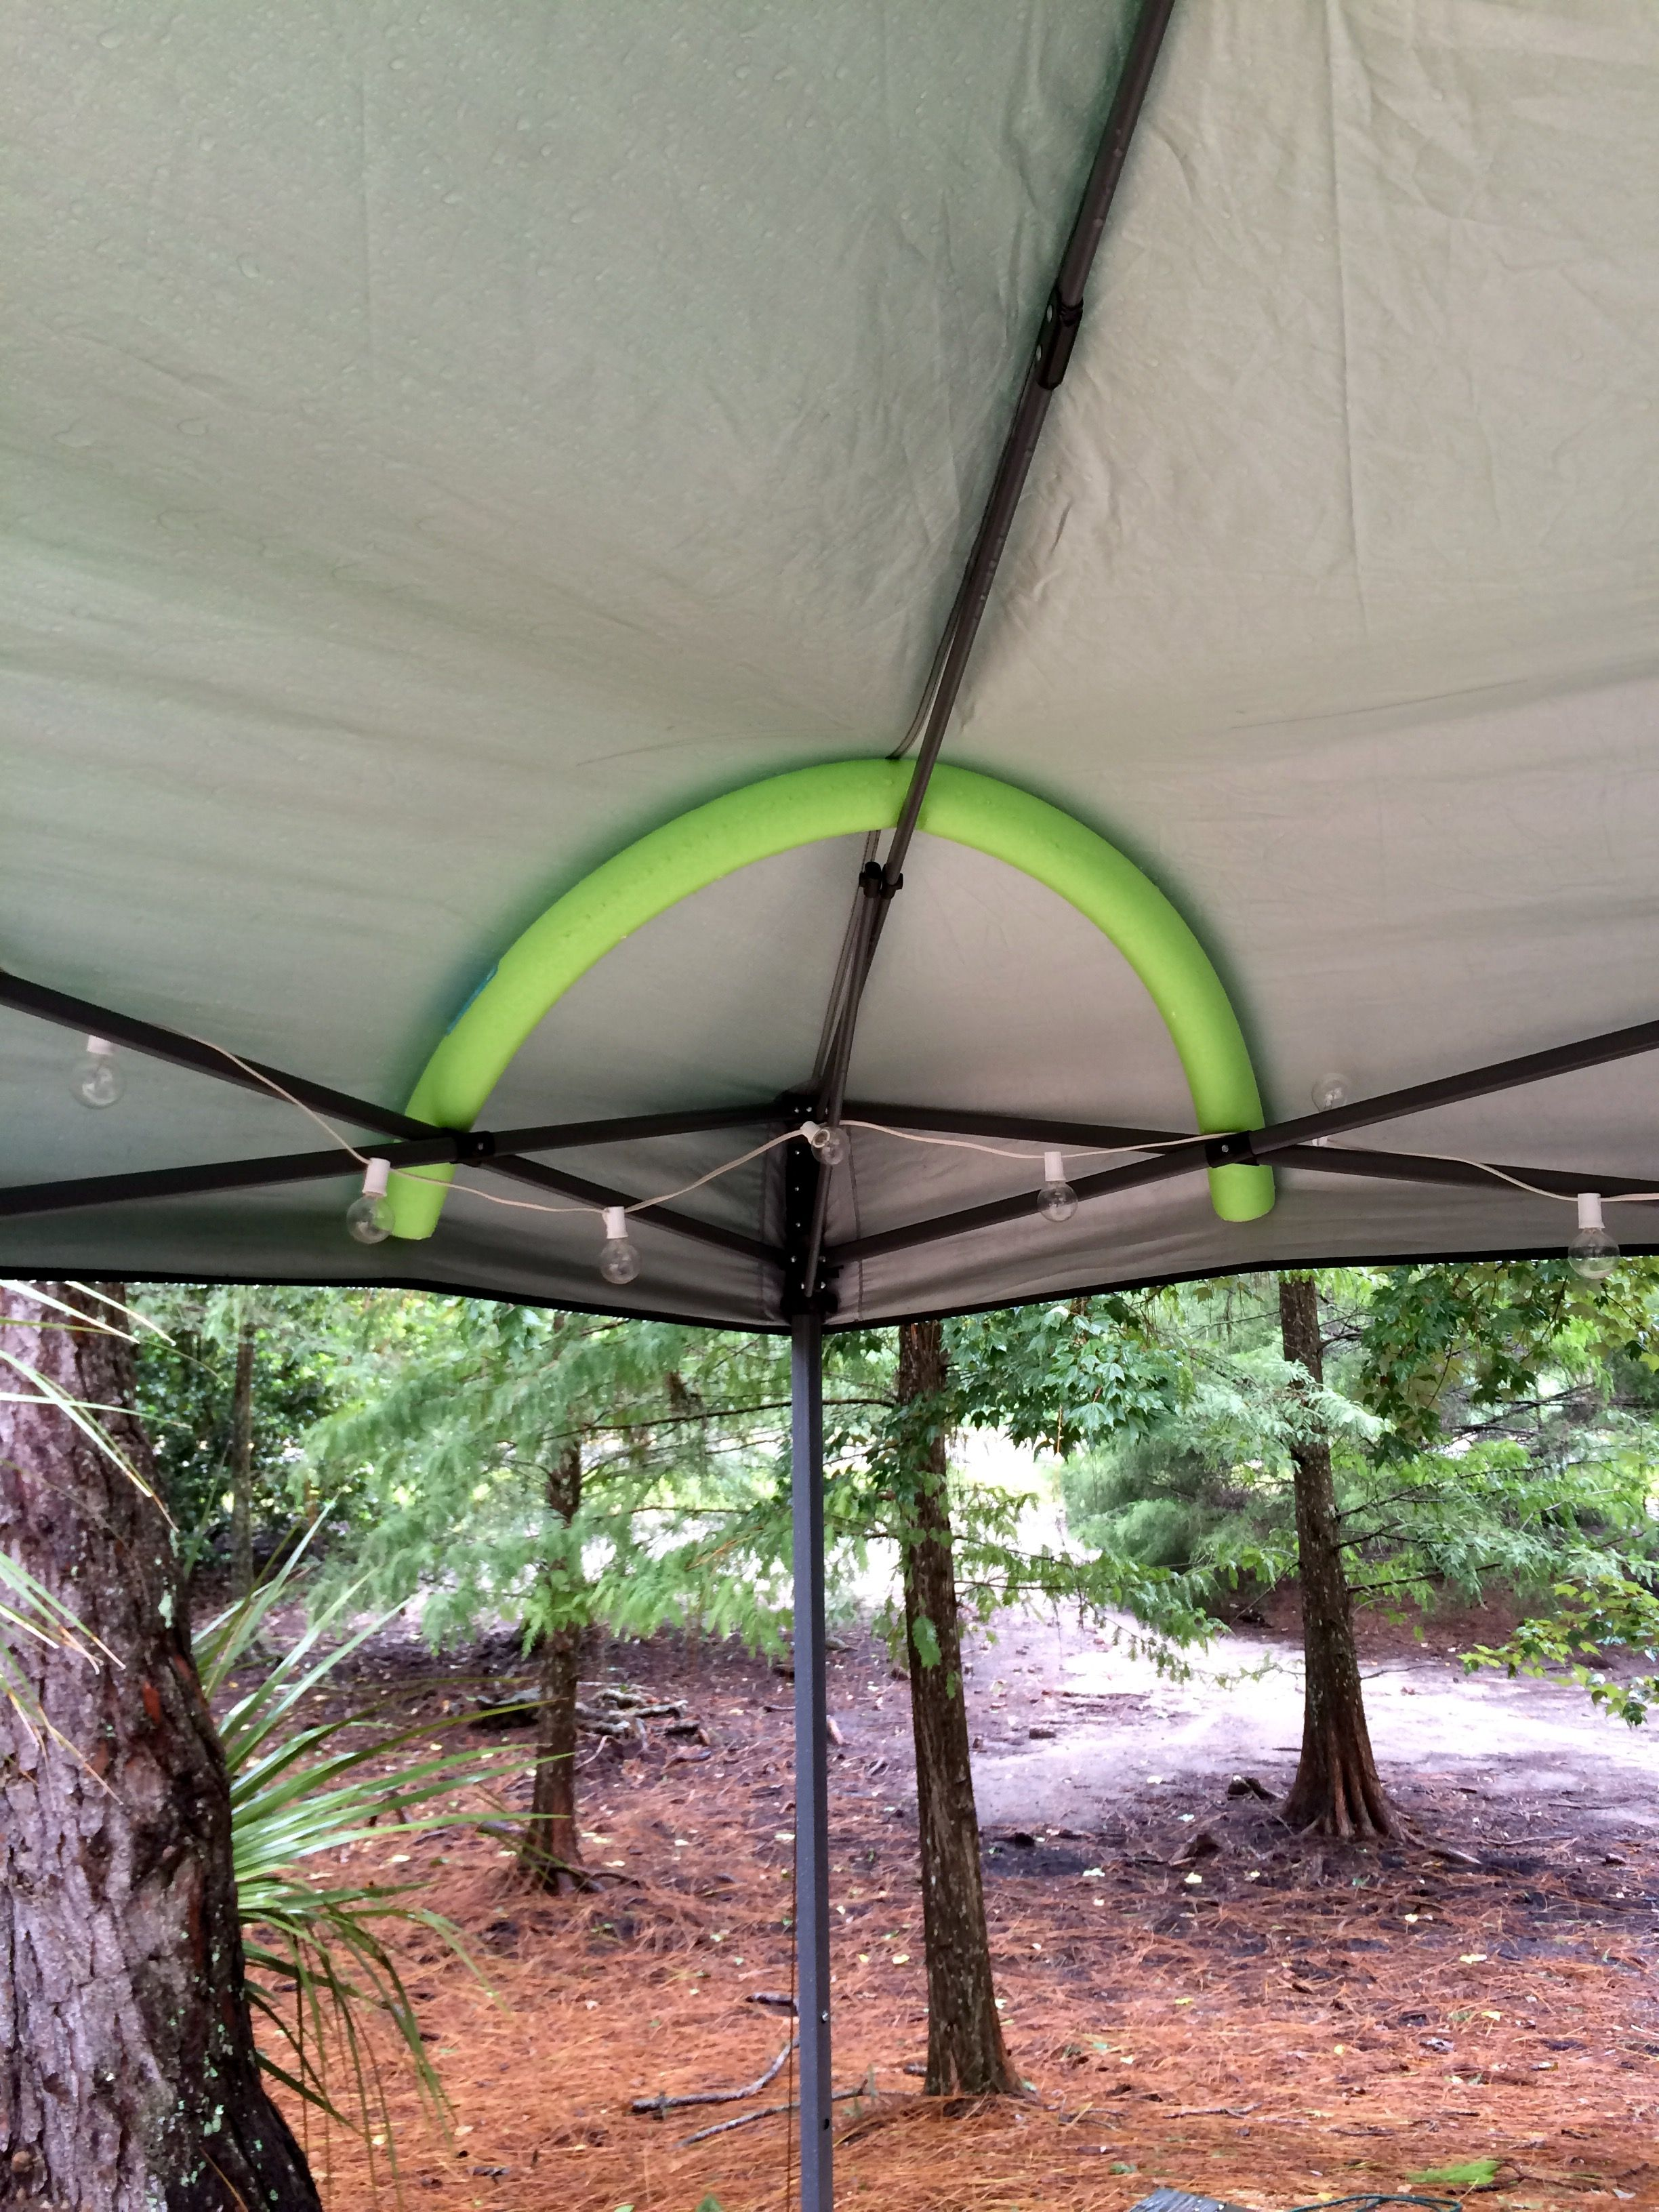 Works great for easy up tents whenu2026 & The best pool noodle idea ever!!! Works great for easy up tents when ...